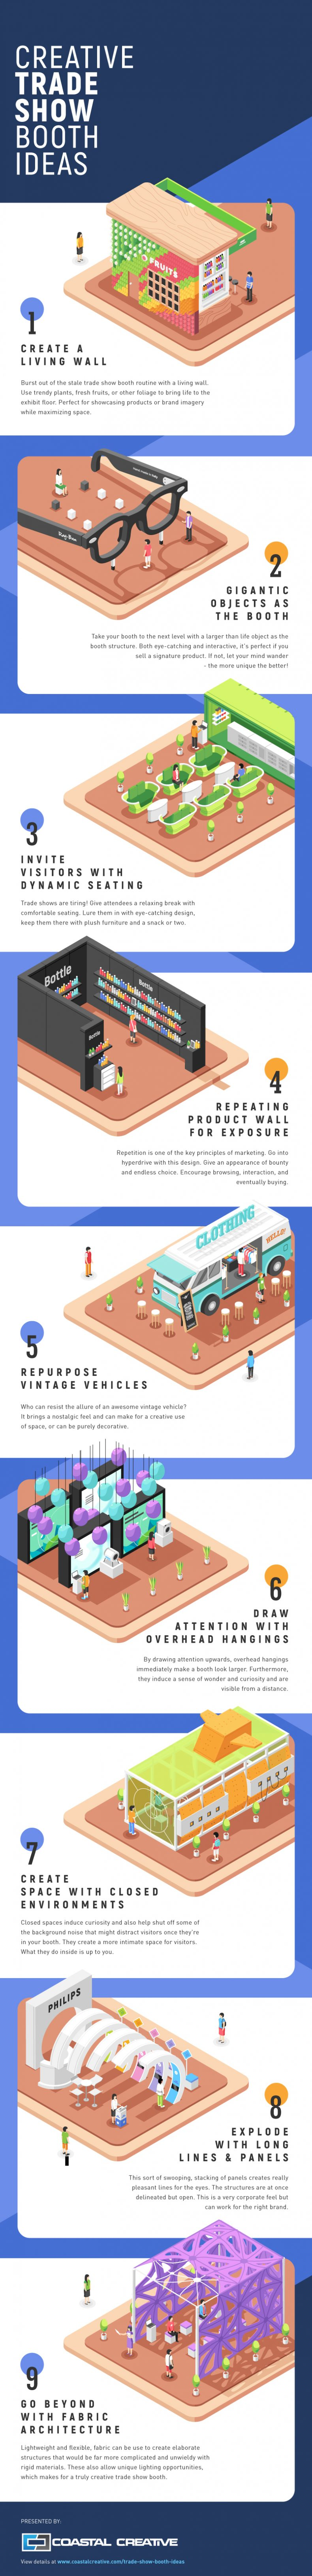 unique trade show booth and display ideas infographic